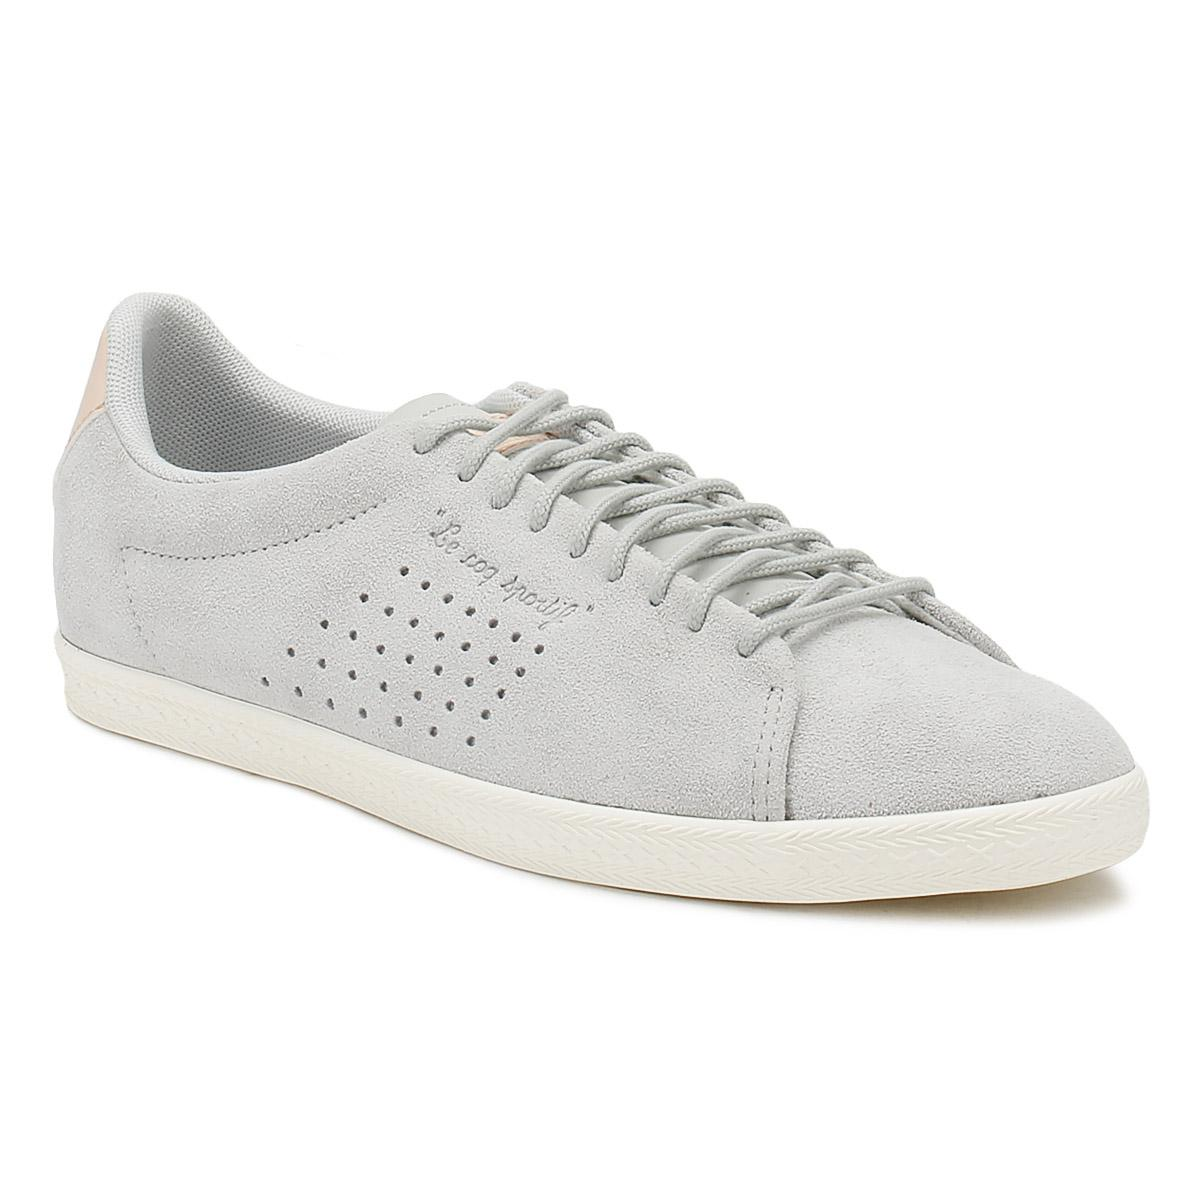 07943edd81e2 Le Coq Sportif Womens Galet Grey Charline Trainers in Gray - Save 39 ...